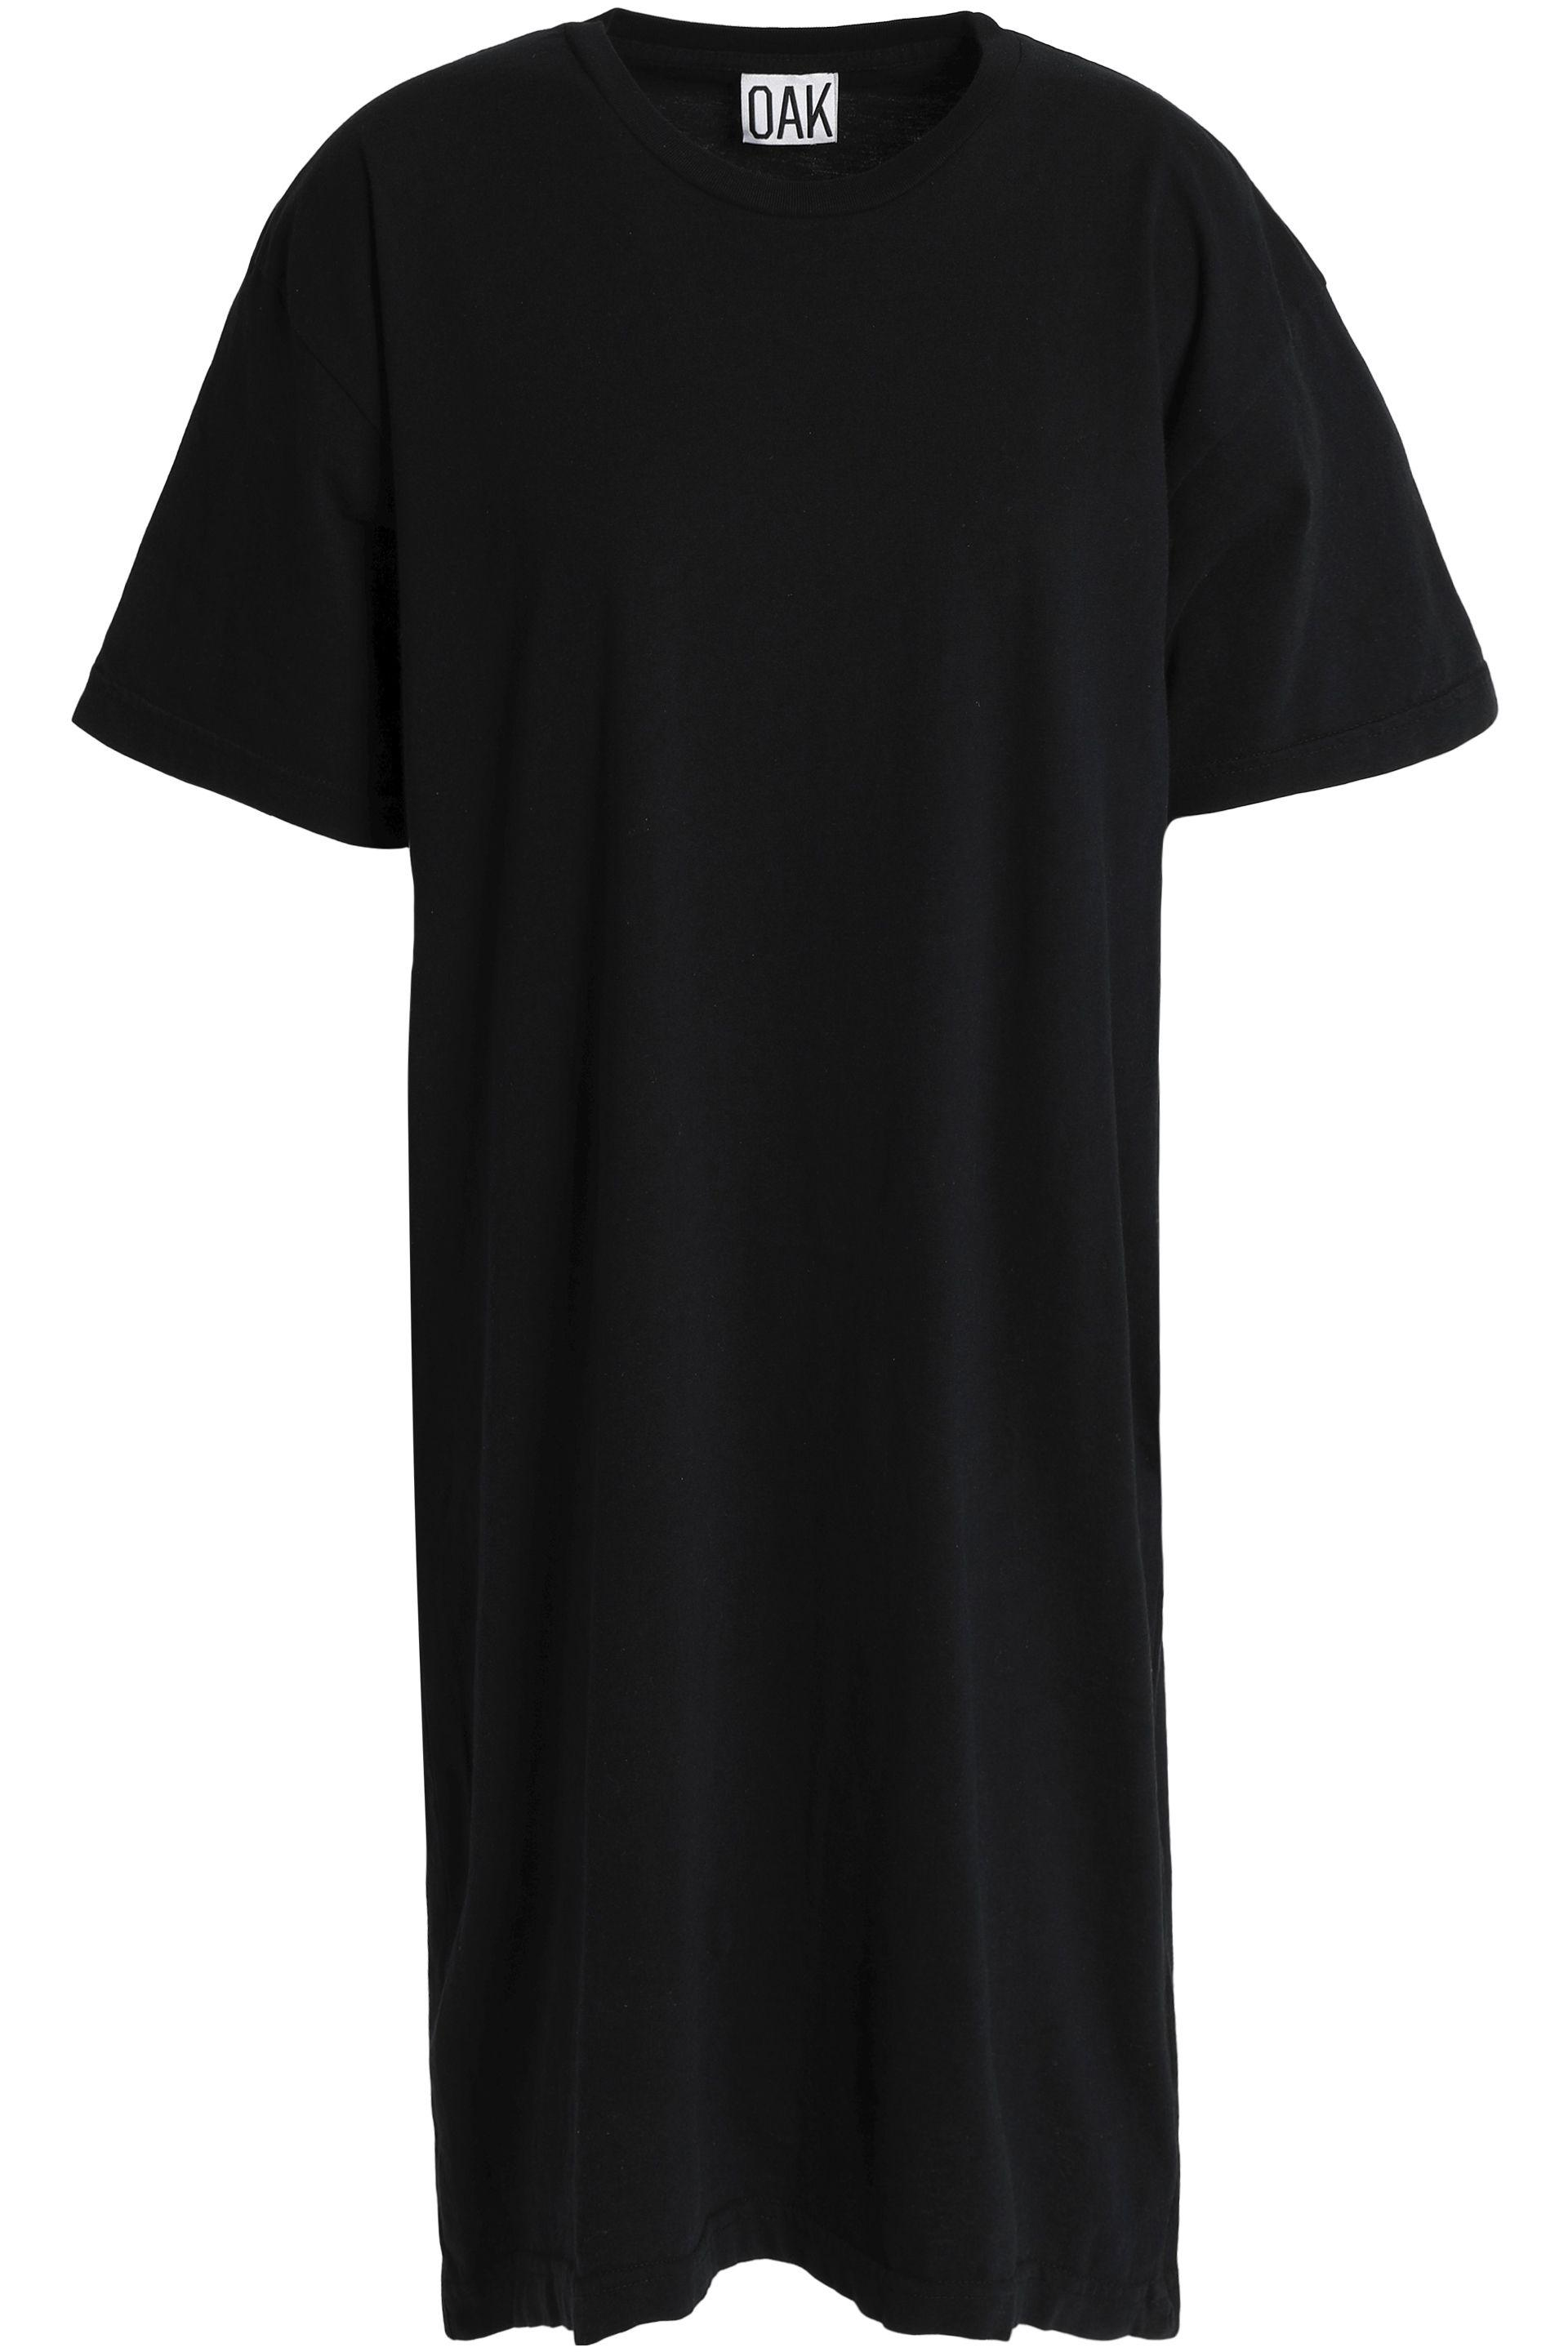 Oak Woman Asymmetric Cotton-jersey Dress Black Size XL OAK 0qBz2w